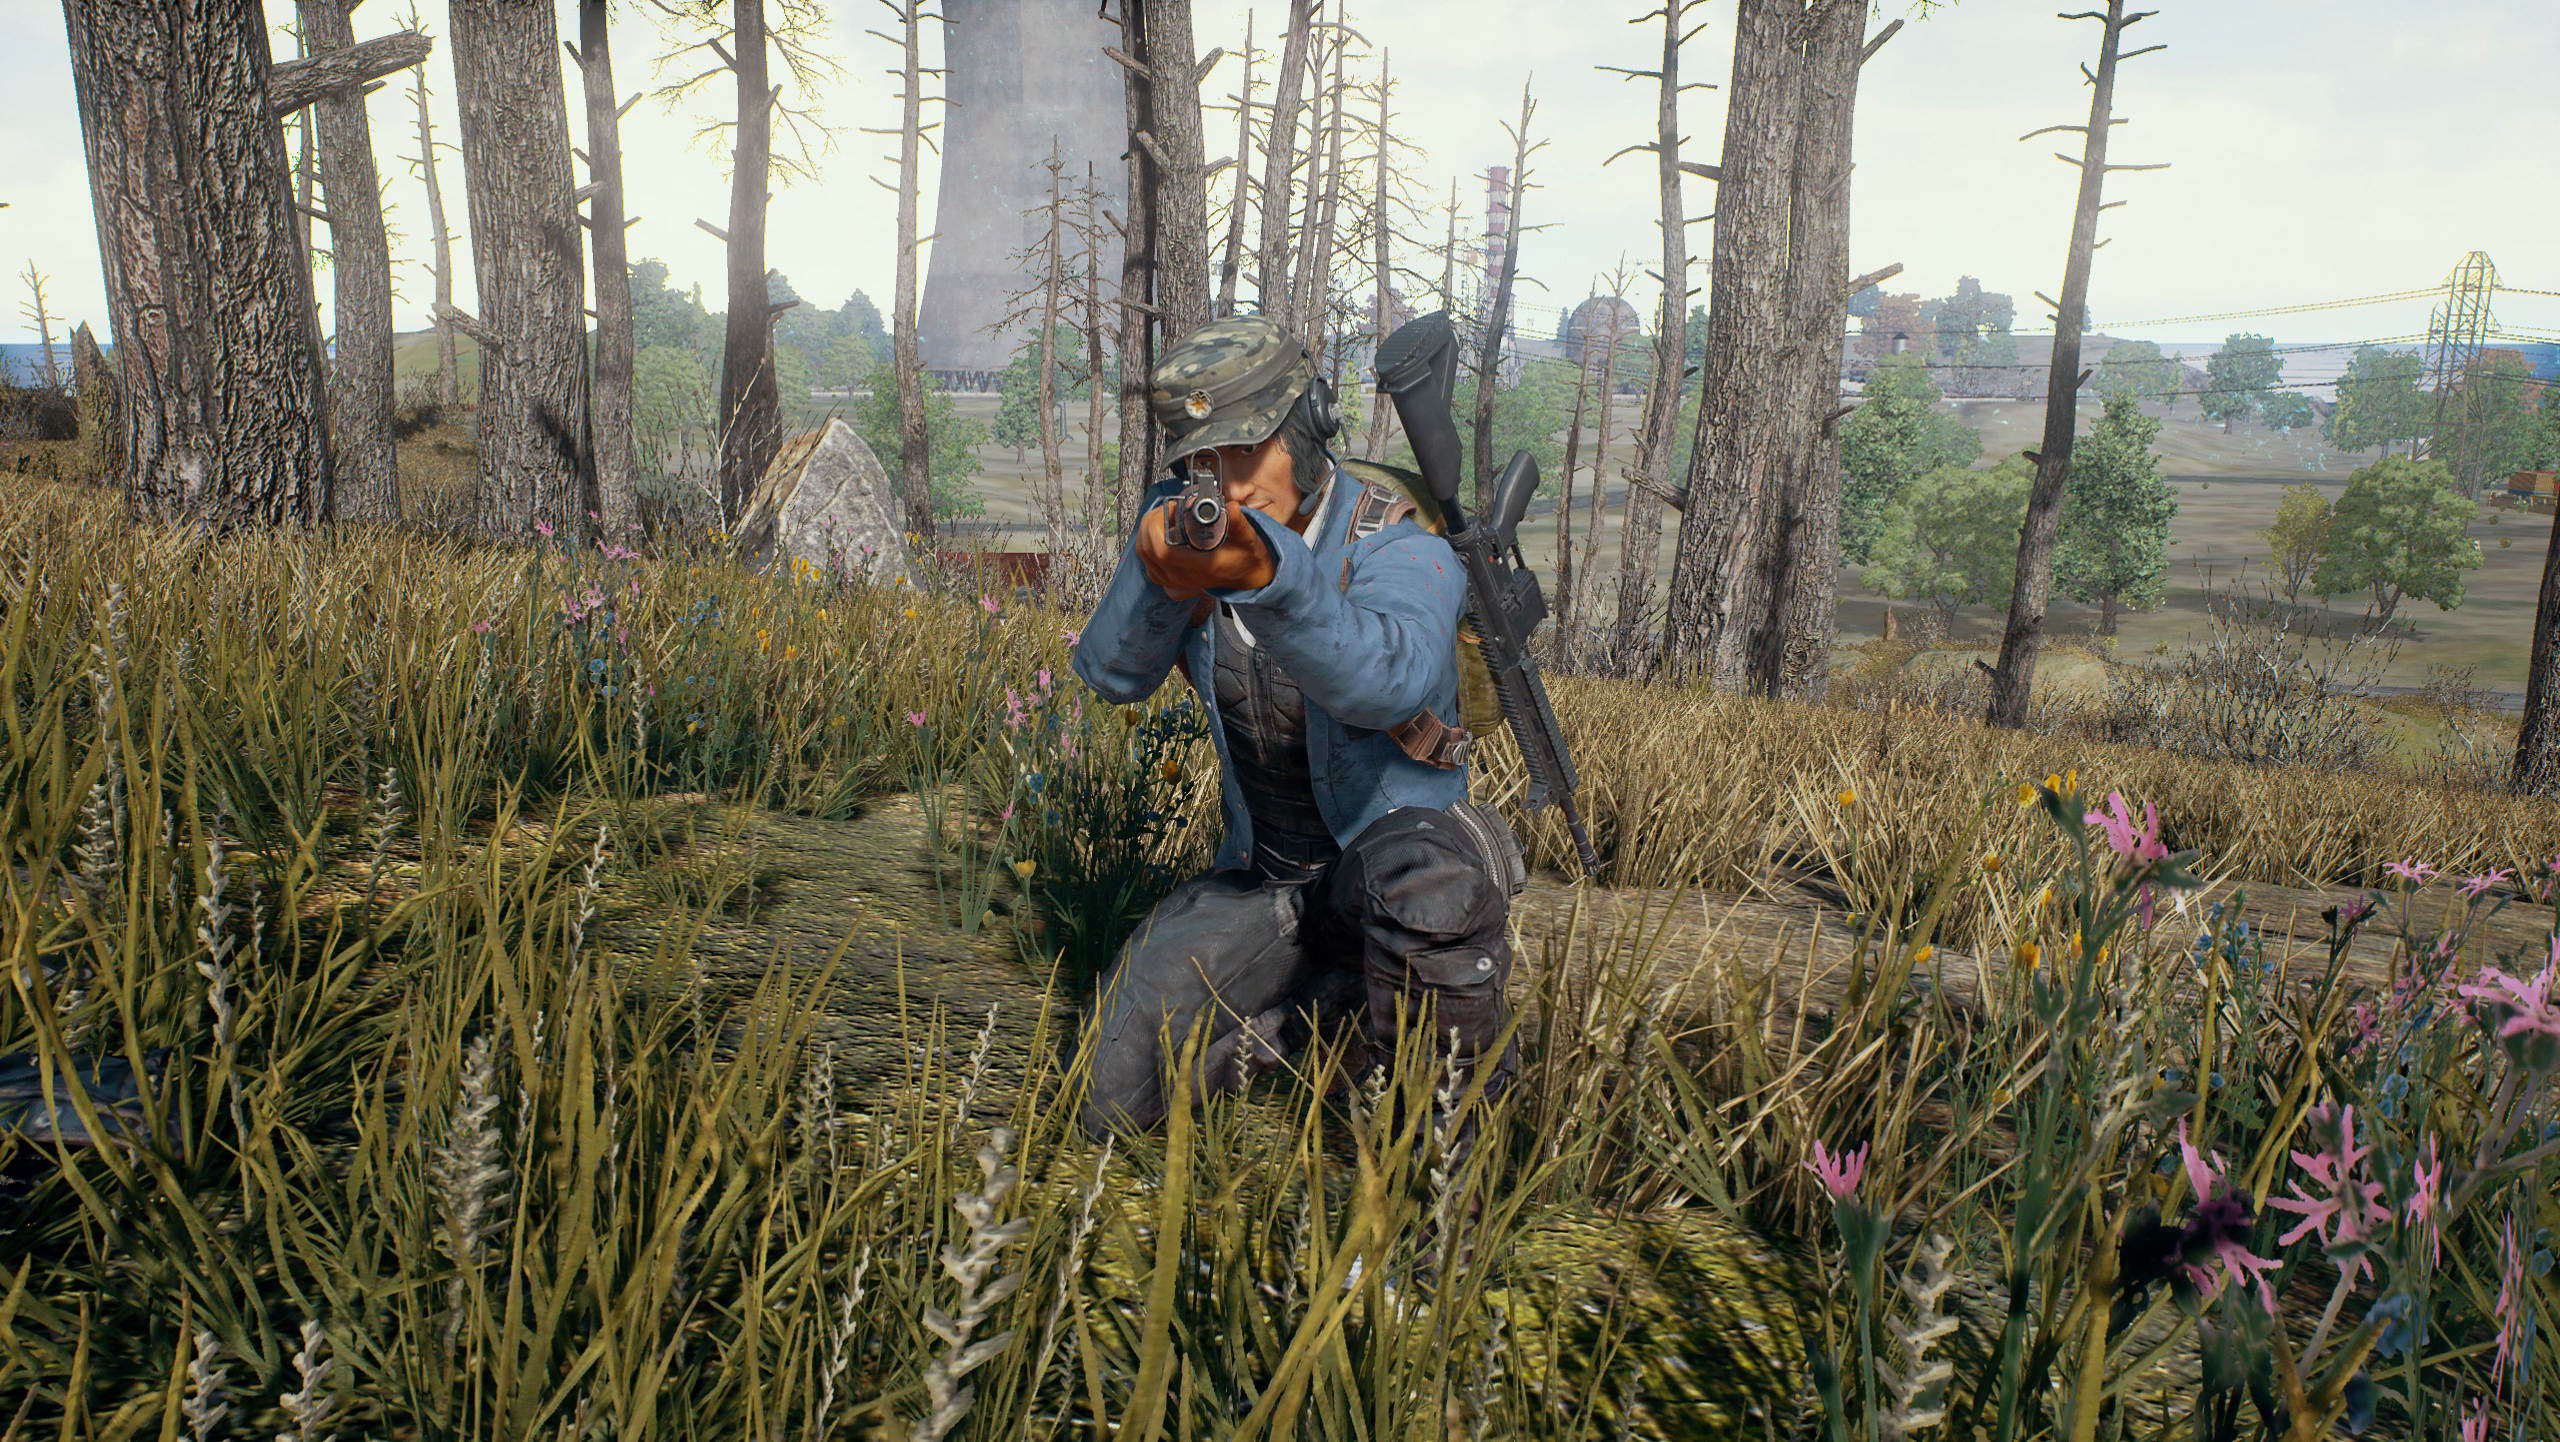 PlayerUnknown's Battlegrounds Releases Code Of Conduct